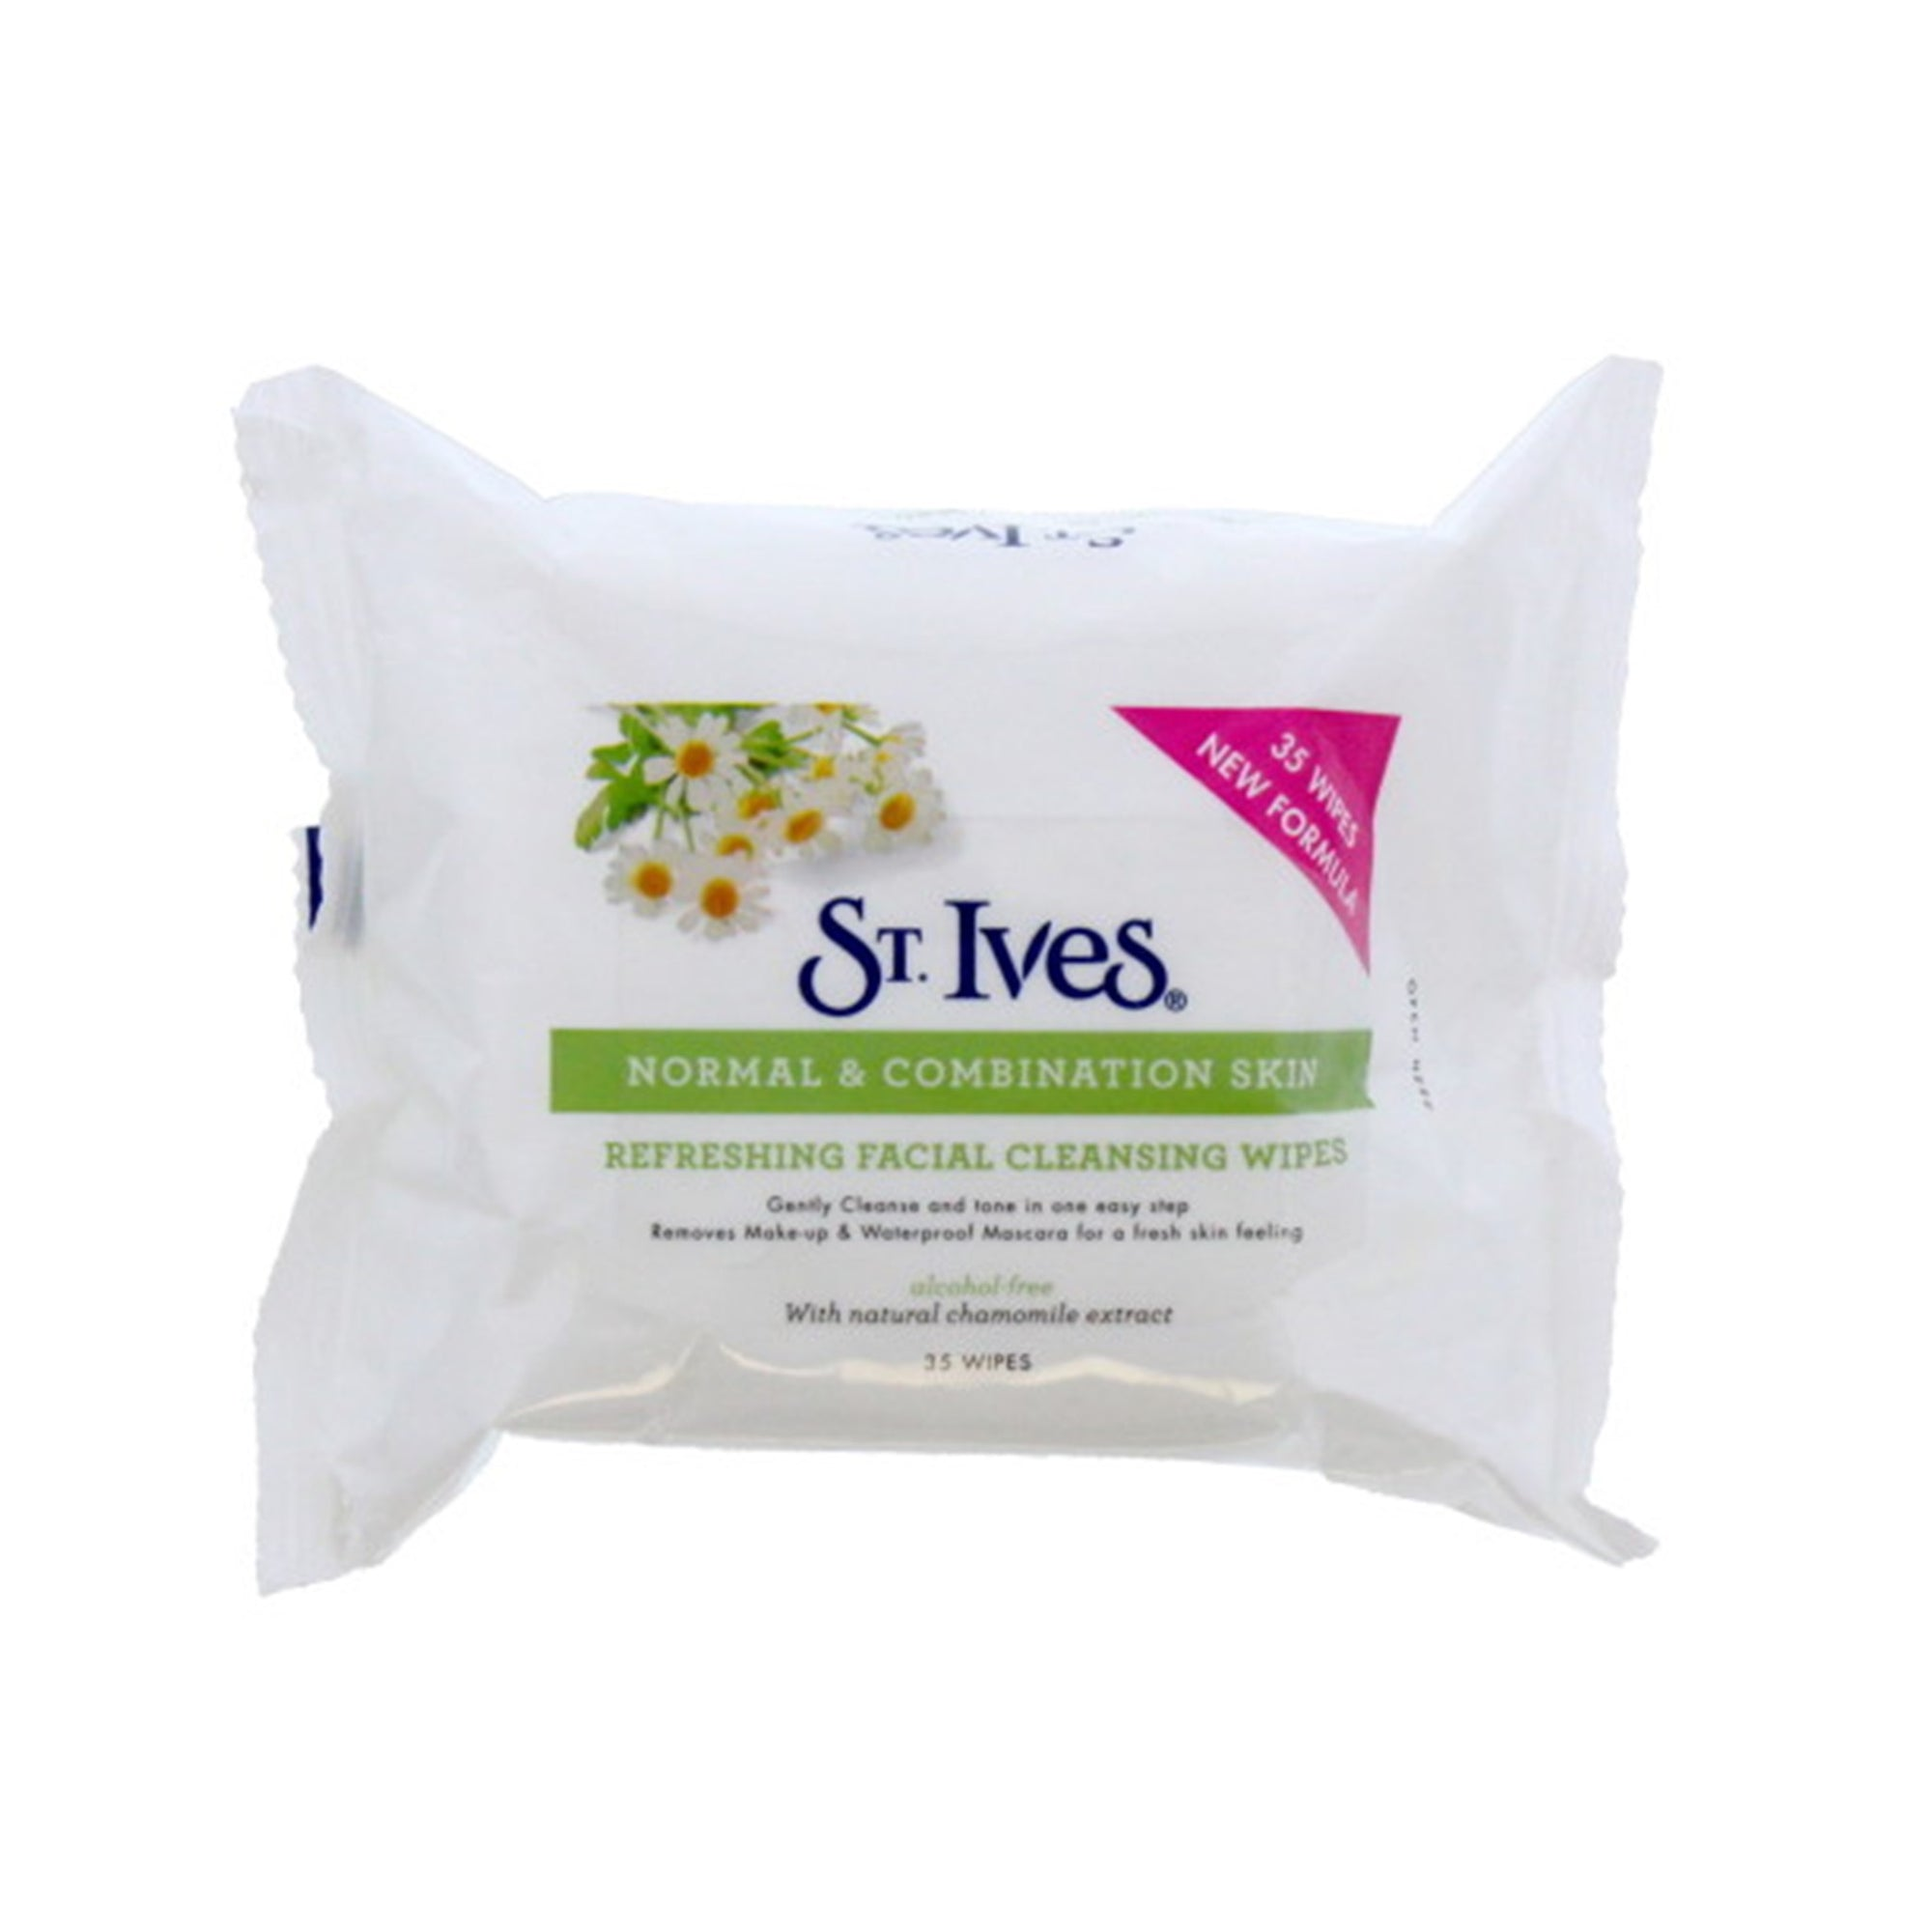 St Ives Face Wipes Normal & Combination Skin 35Pk